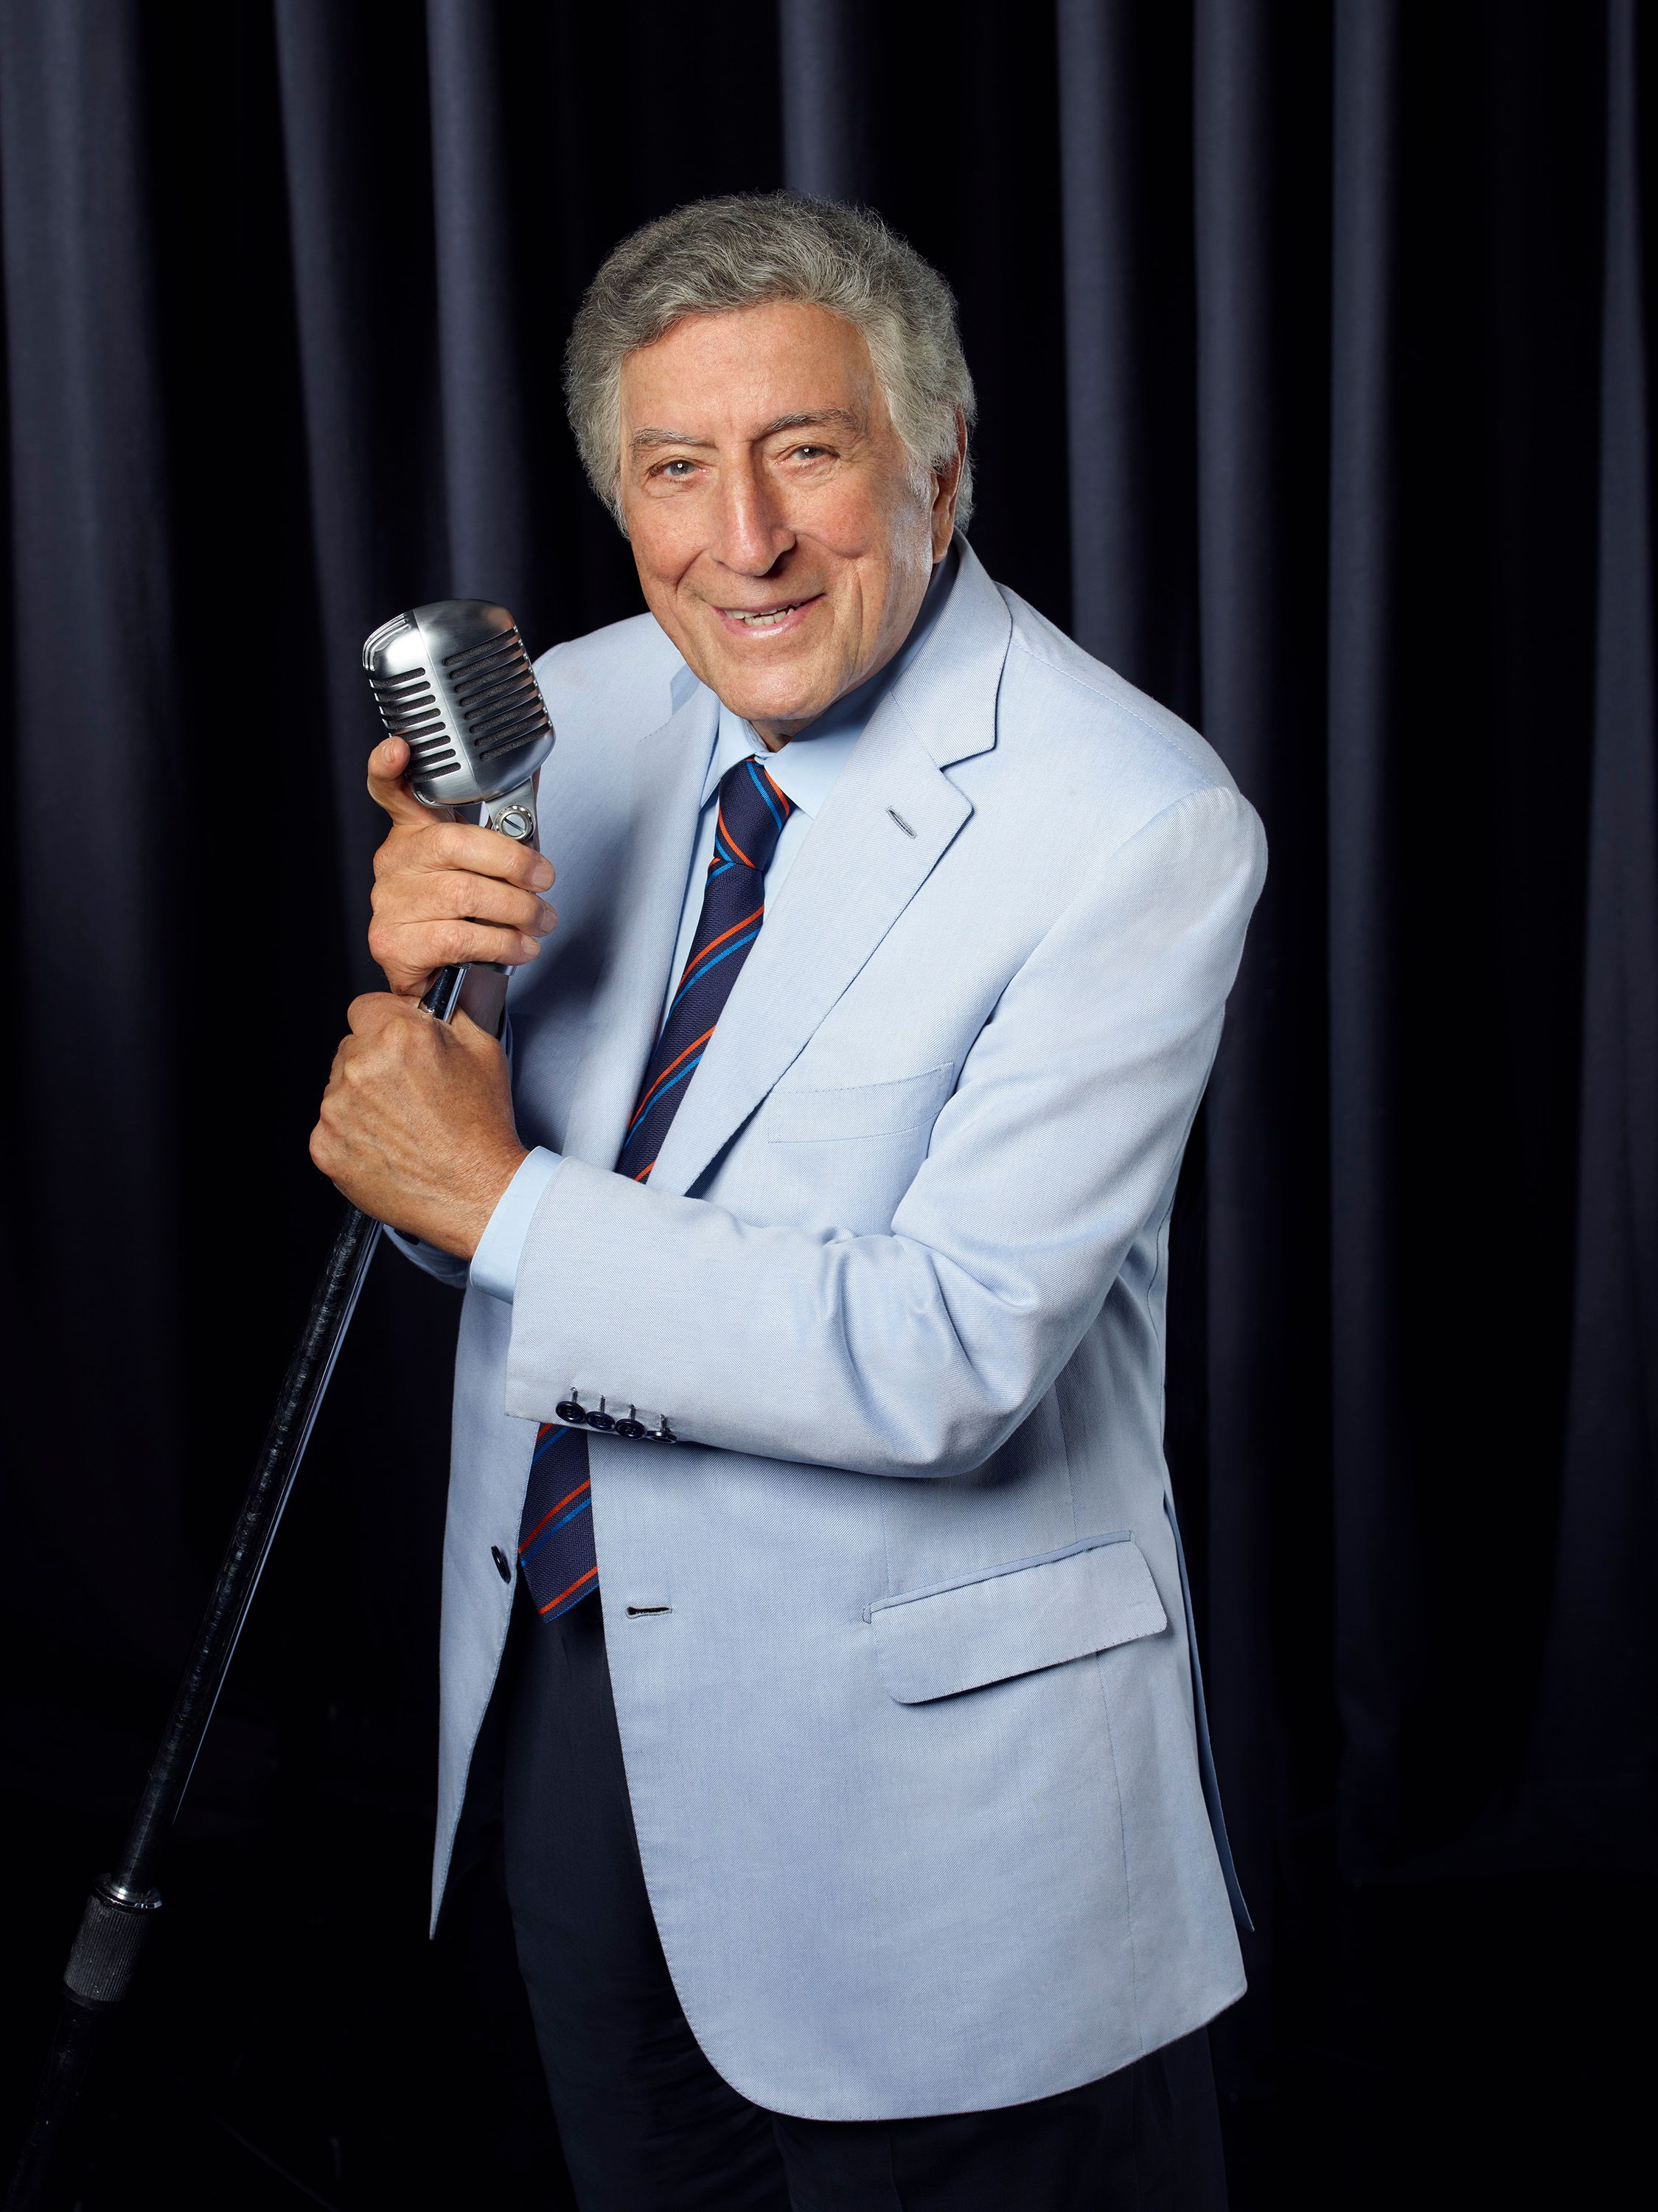 Singer Tony Bennett at NBC Universal in 2016 | Source: Getty Images